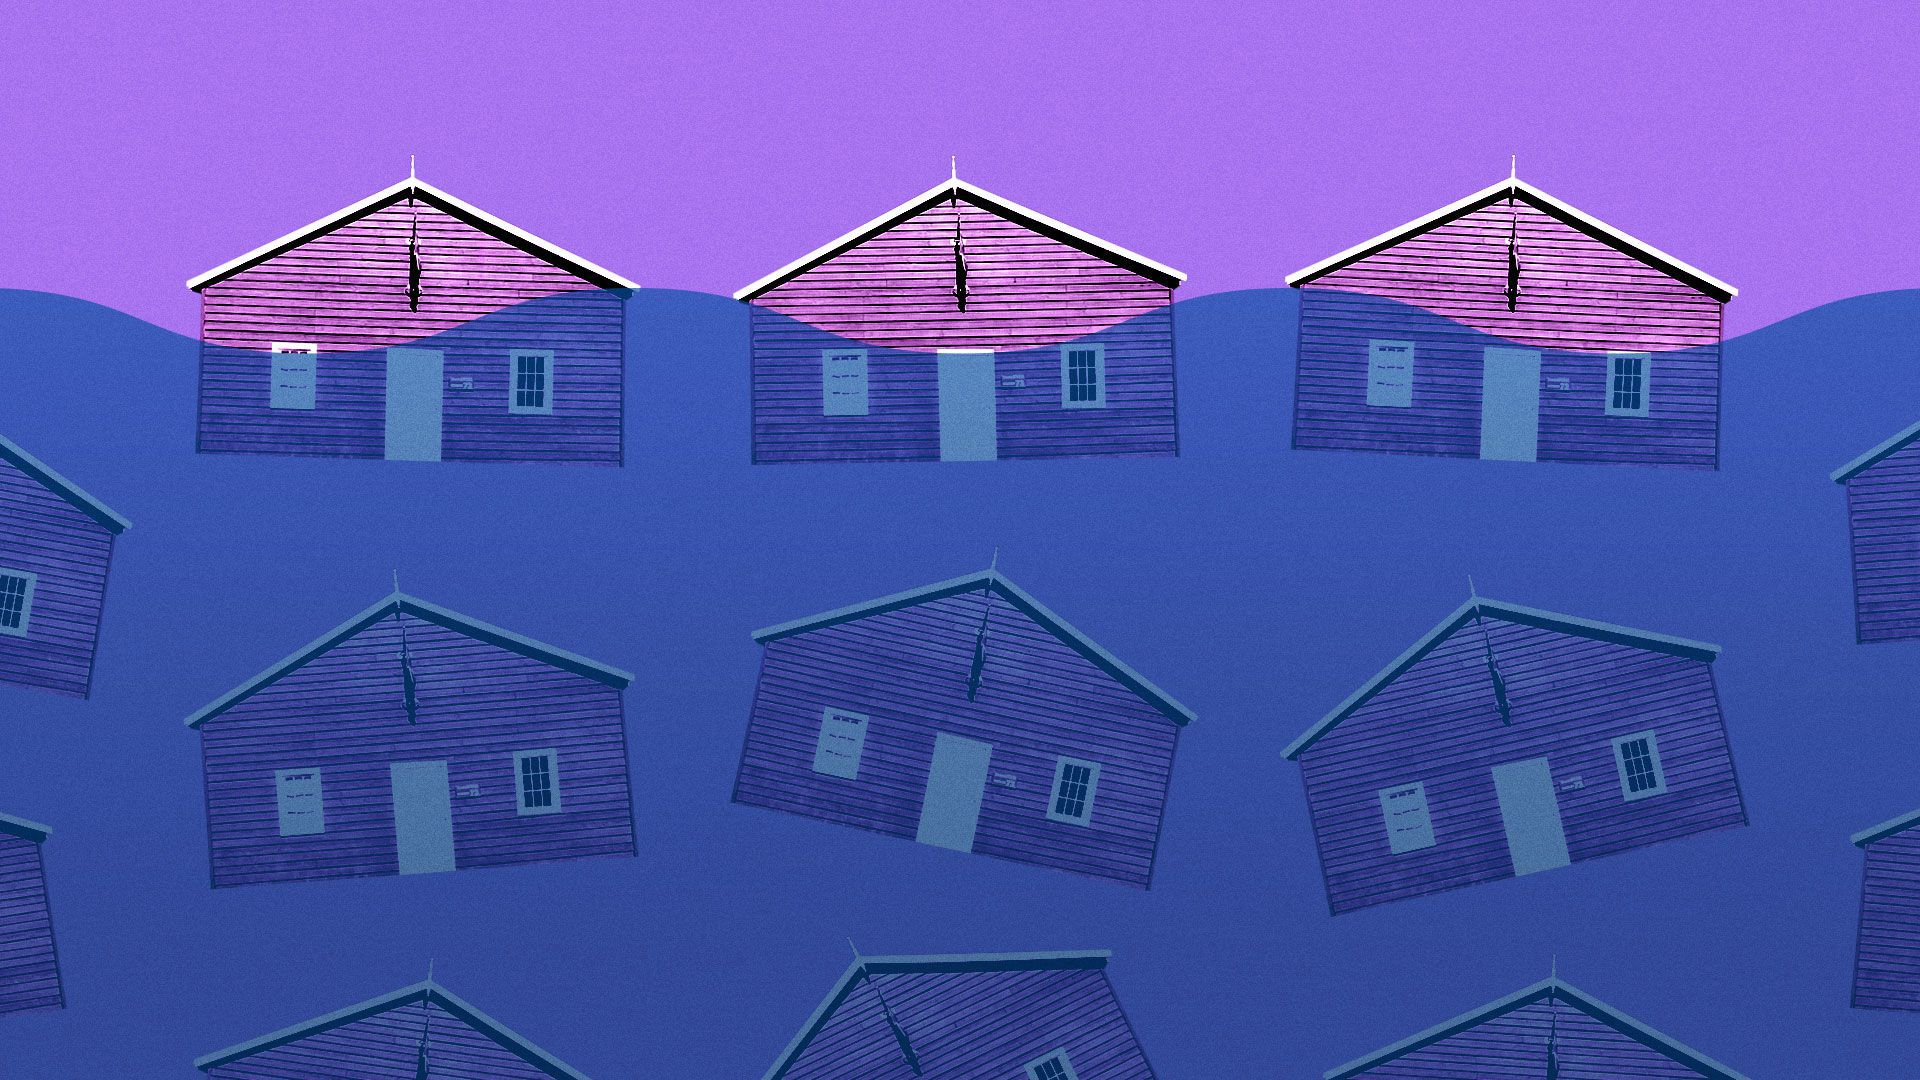 Illustration of pattern of houses partially submerged under water